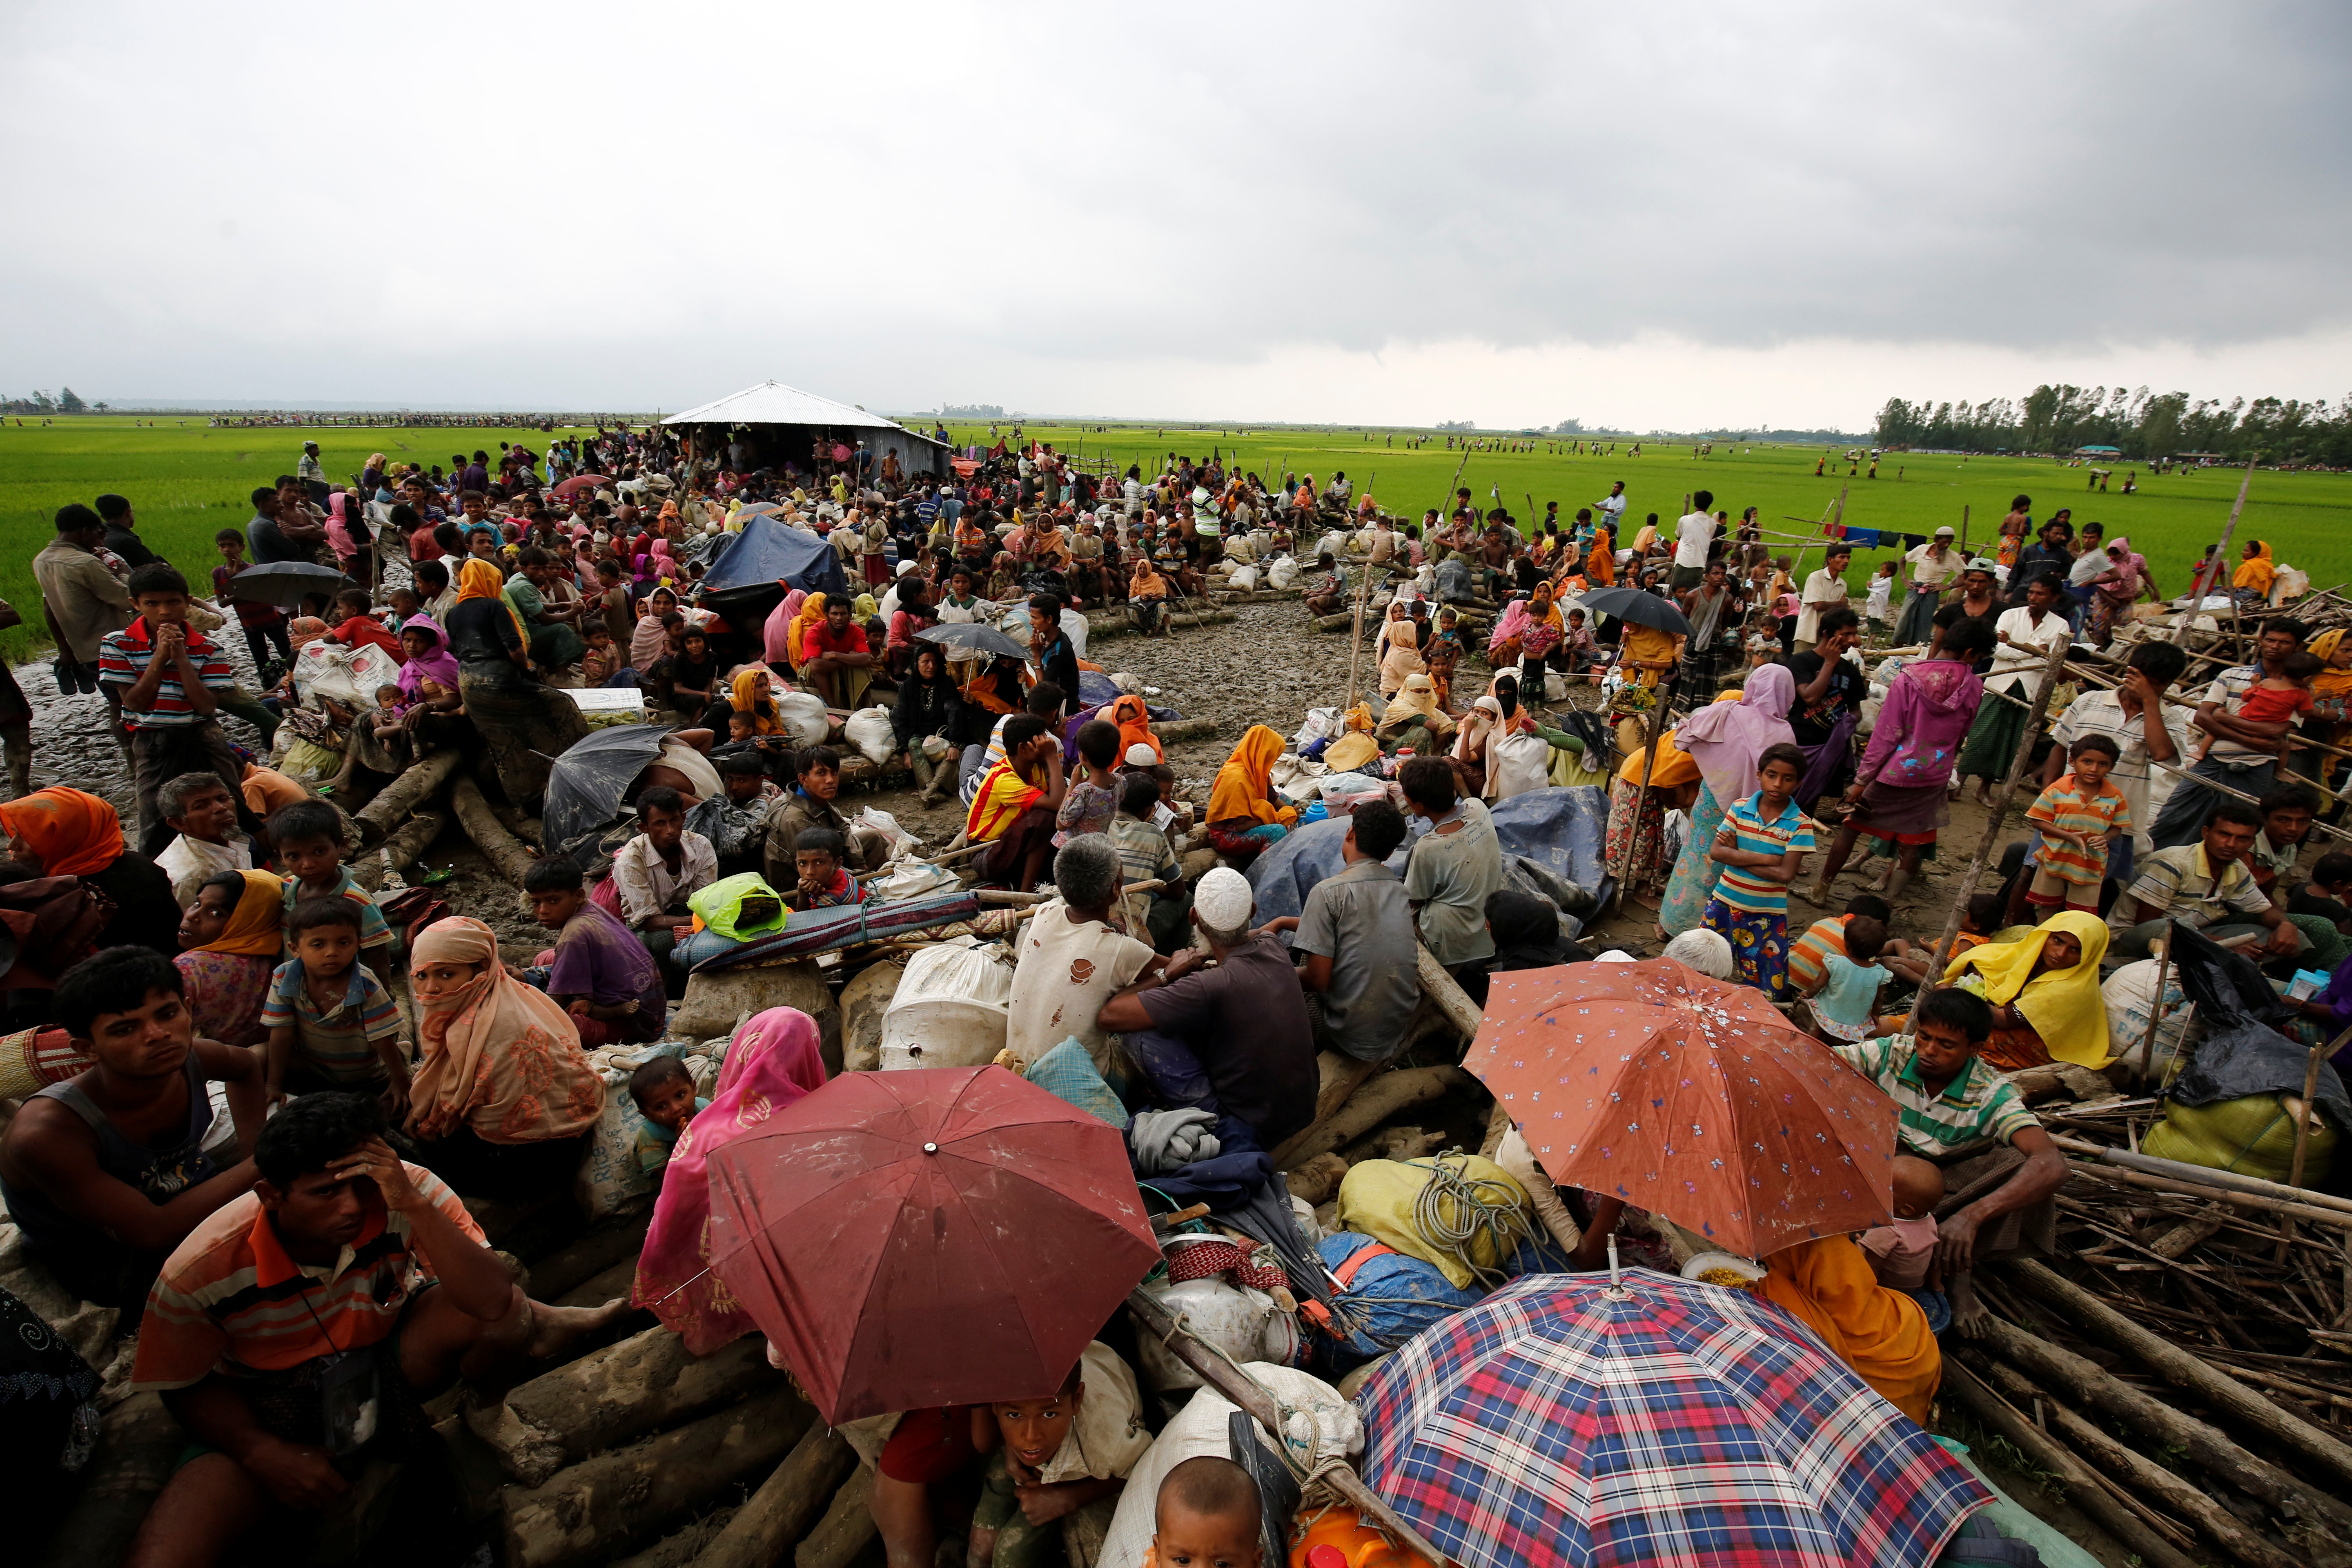 Rohingya refugees sit as they are temporarily held by the Border Guard Bangladesh (BGB) in an open area after crossing the border, in Teknaf, Bangladesh, September 3, 2017. REUTERS/Mohammad Ponir Hossain